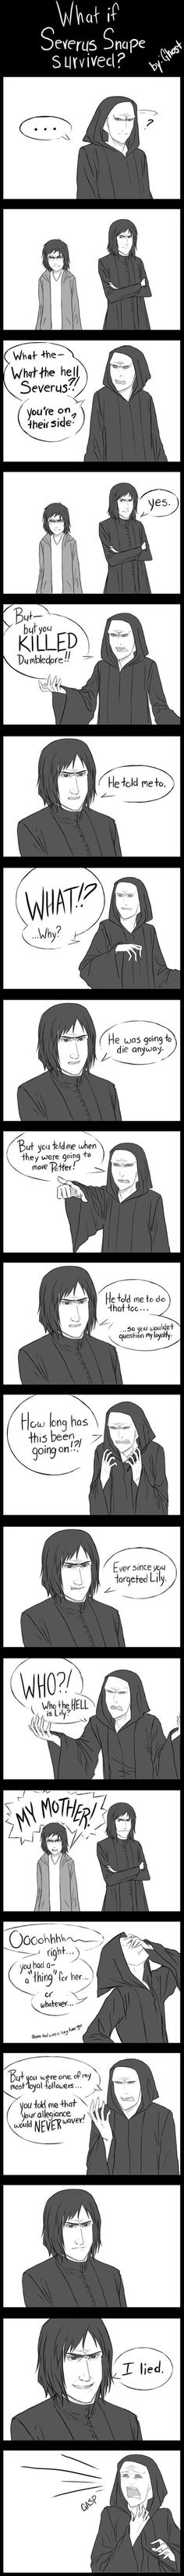 What If Severus Snape Survived? [Comic What If Severus Snape Survived? , What If Severus Snape Survived? I chuckled. I chuckled. Memes Do Harry Potter, Theme Harry Potter, Harry Potter Fandom, Potter Facts, Harry Potter Comics, Hogwarts, Voldemort, Harry Potter Universe, Movies Quotes